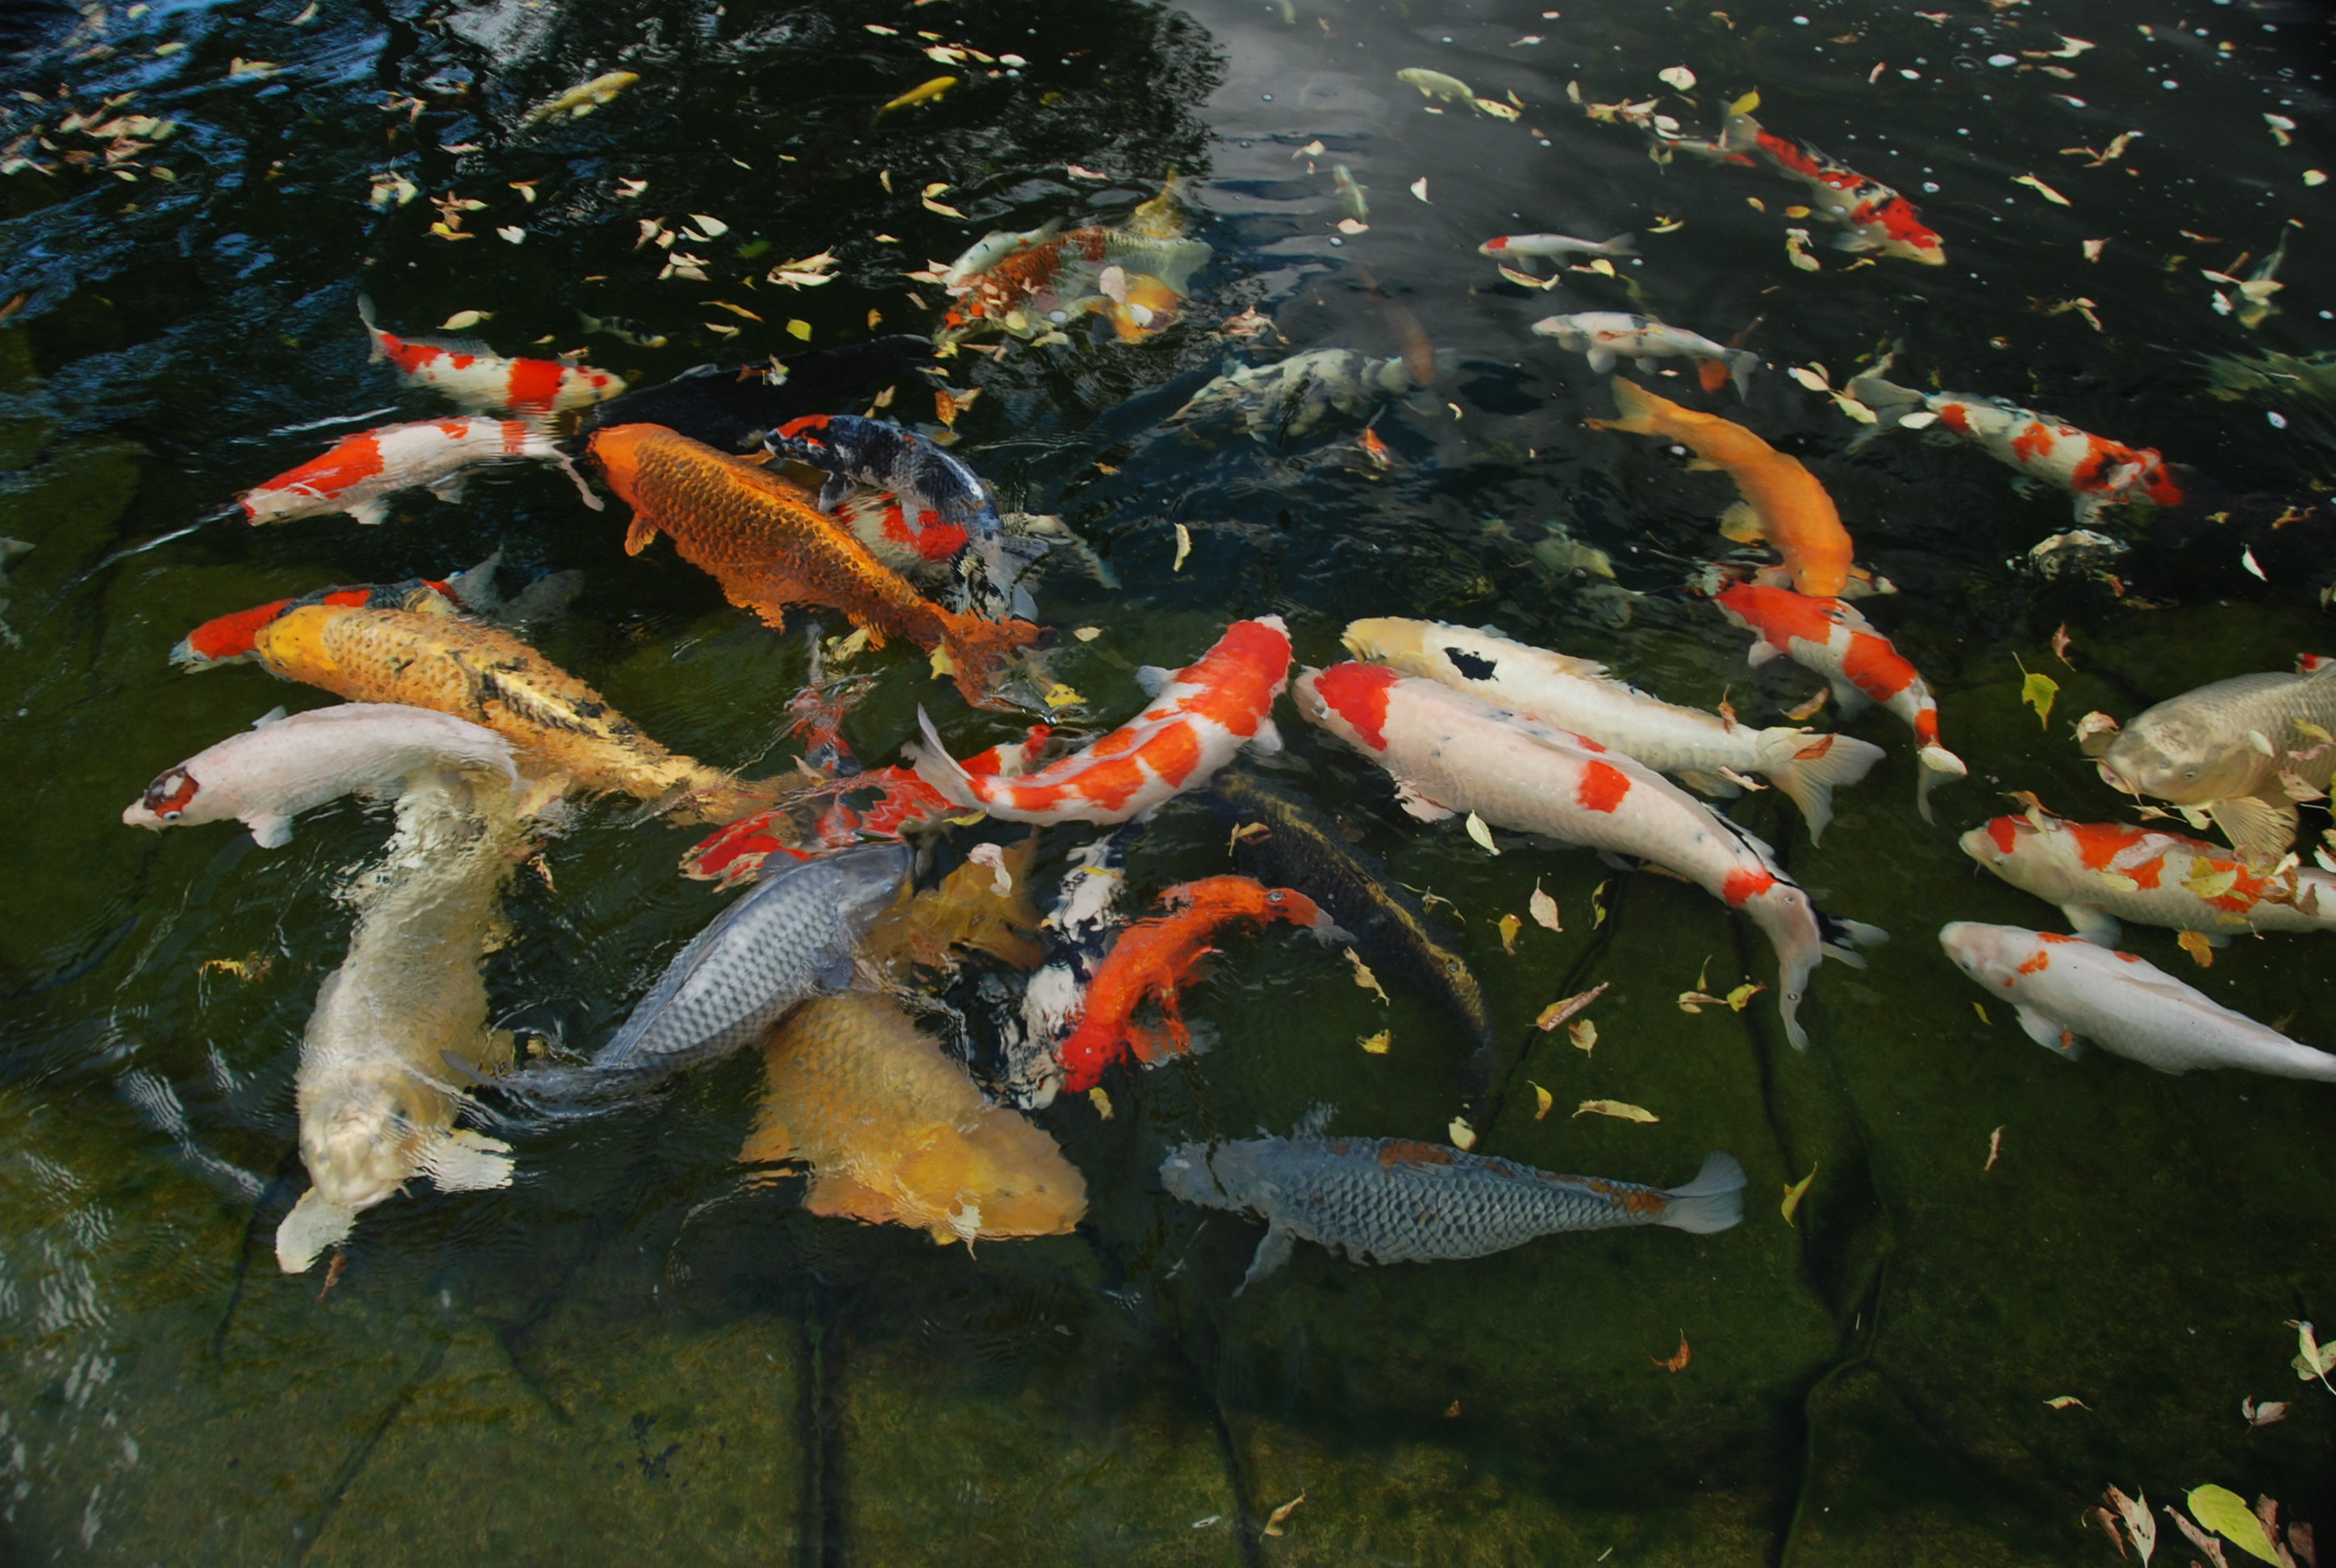 Koi acres imported japanese koi online shopping for koi for Koi carp fish information